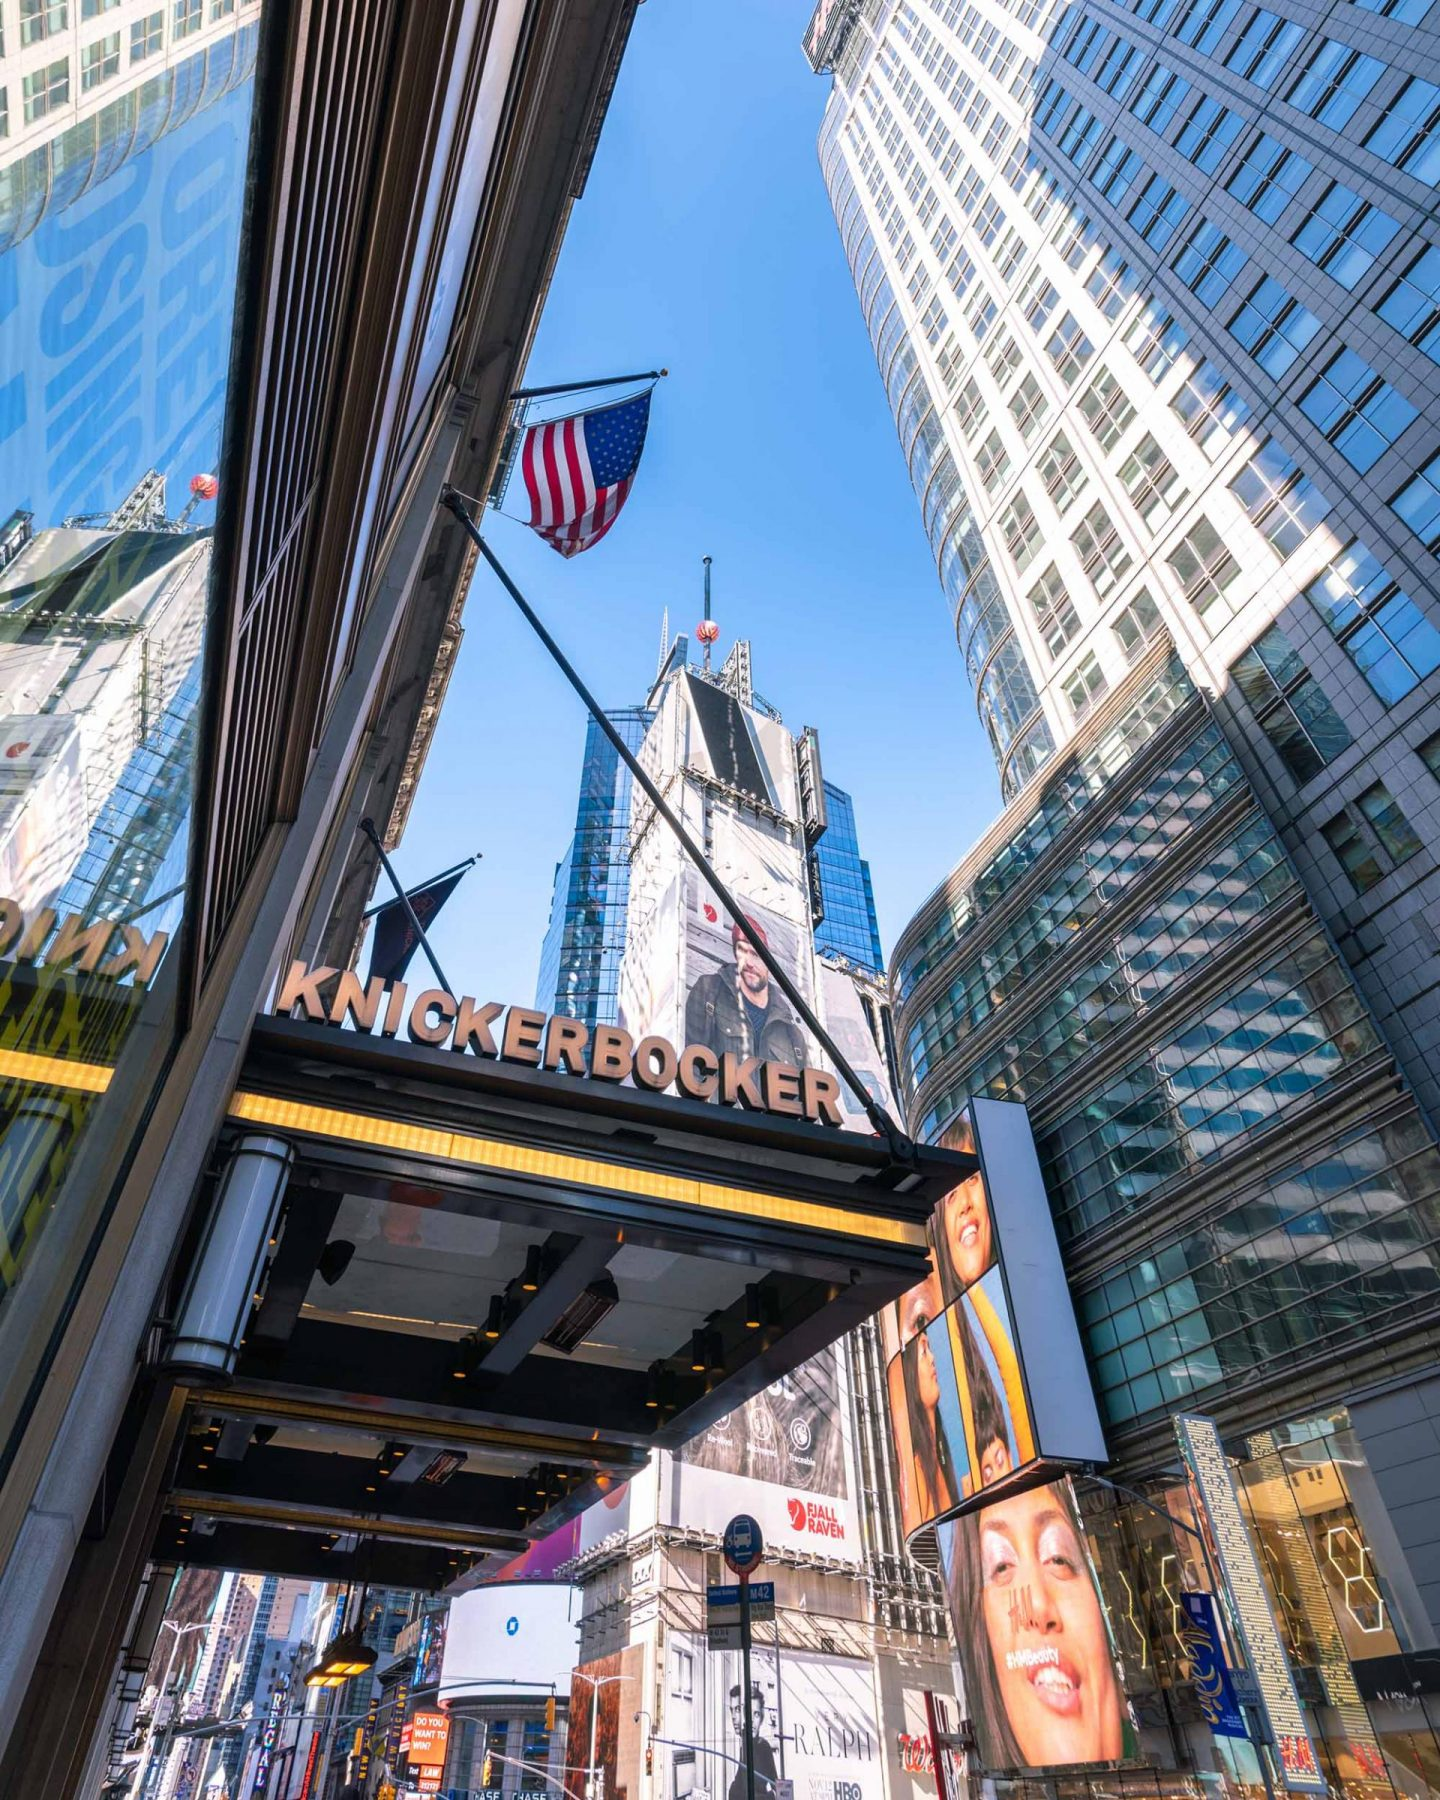 Full hotel review of The Knickerbocker in Times Square, New York.